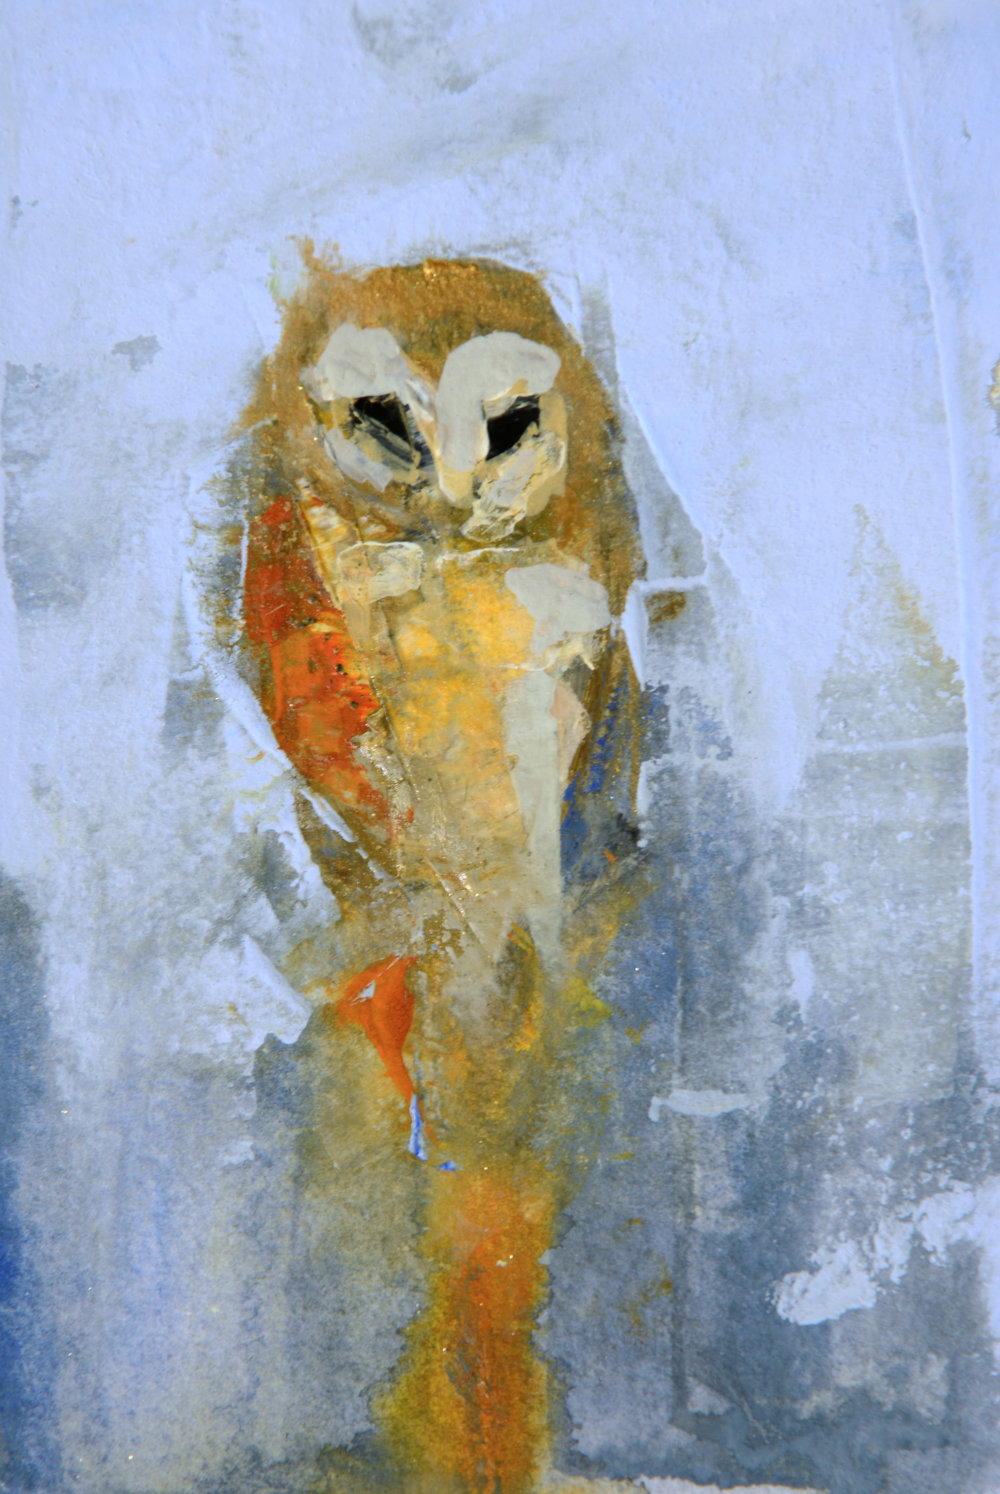 Rebecca_Kinkead_Barn Owl no. 2.MM on paper_inset on 11x7.5.jpg